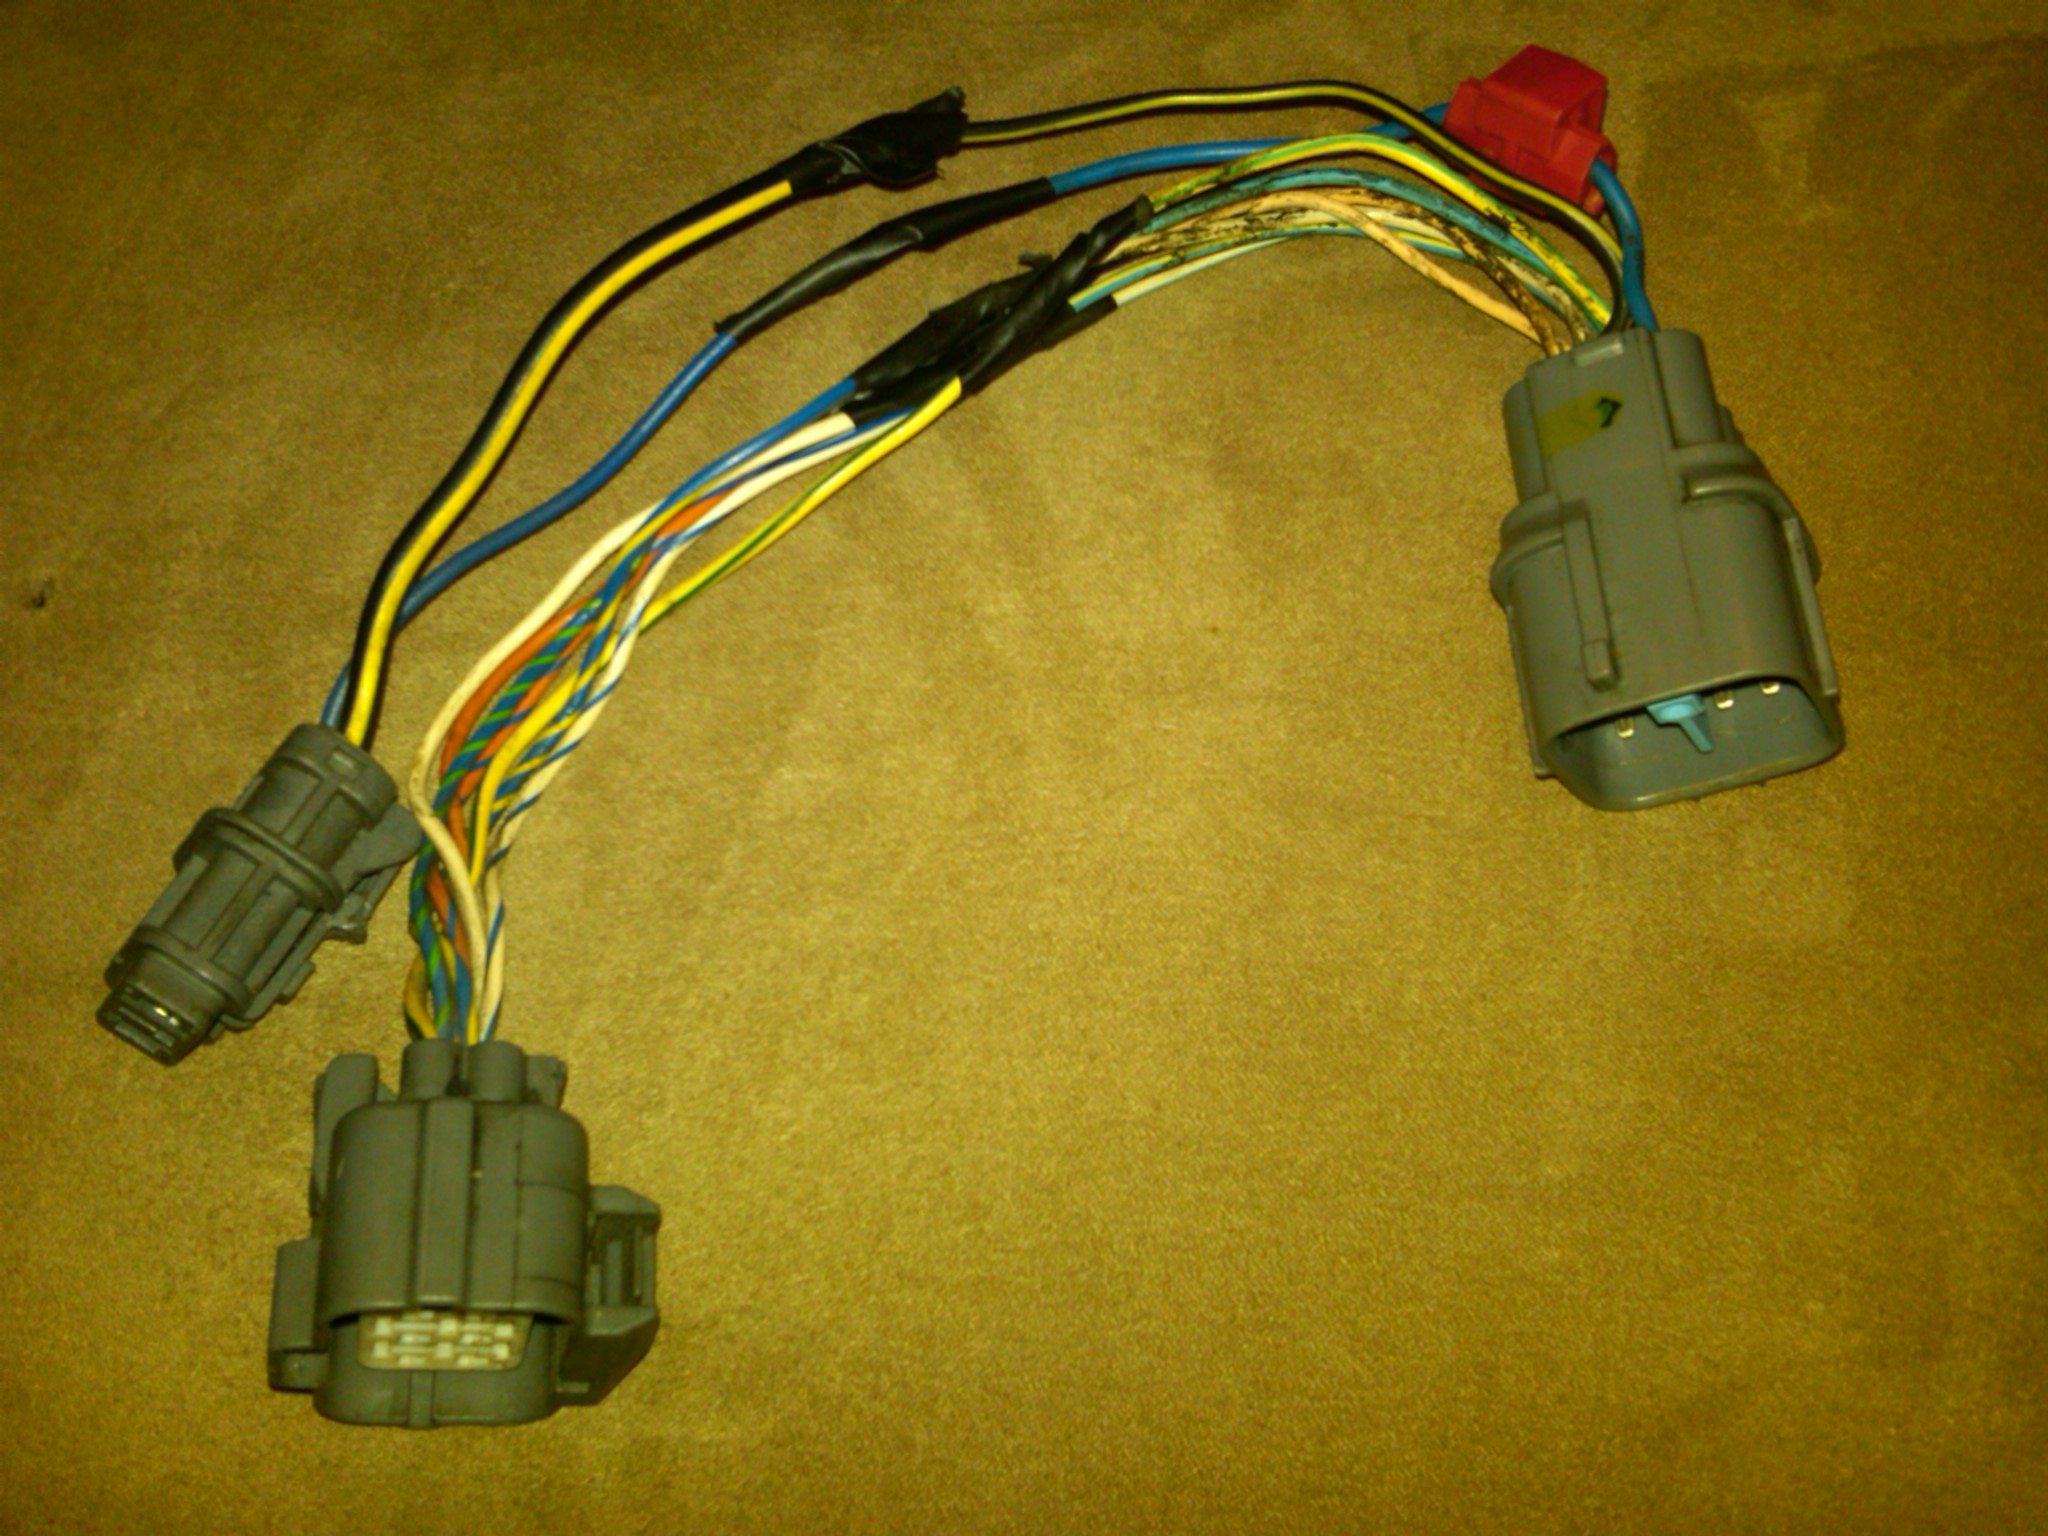 ls2 wiring harness conversion html with Obd2 Wiring Harness on Ls Coil Wiring Diagram together with Obd2 Wiring Harness besides 1786832 Ls2 E40 C206 Pinout Confusion further Ls3 5 Wire Wiring Diagram also Diy Mil Spec Wiring Harness.